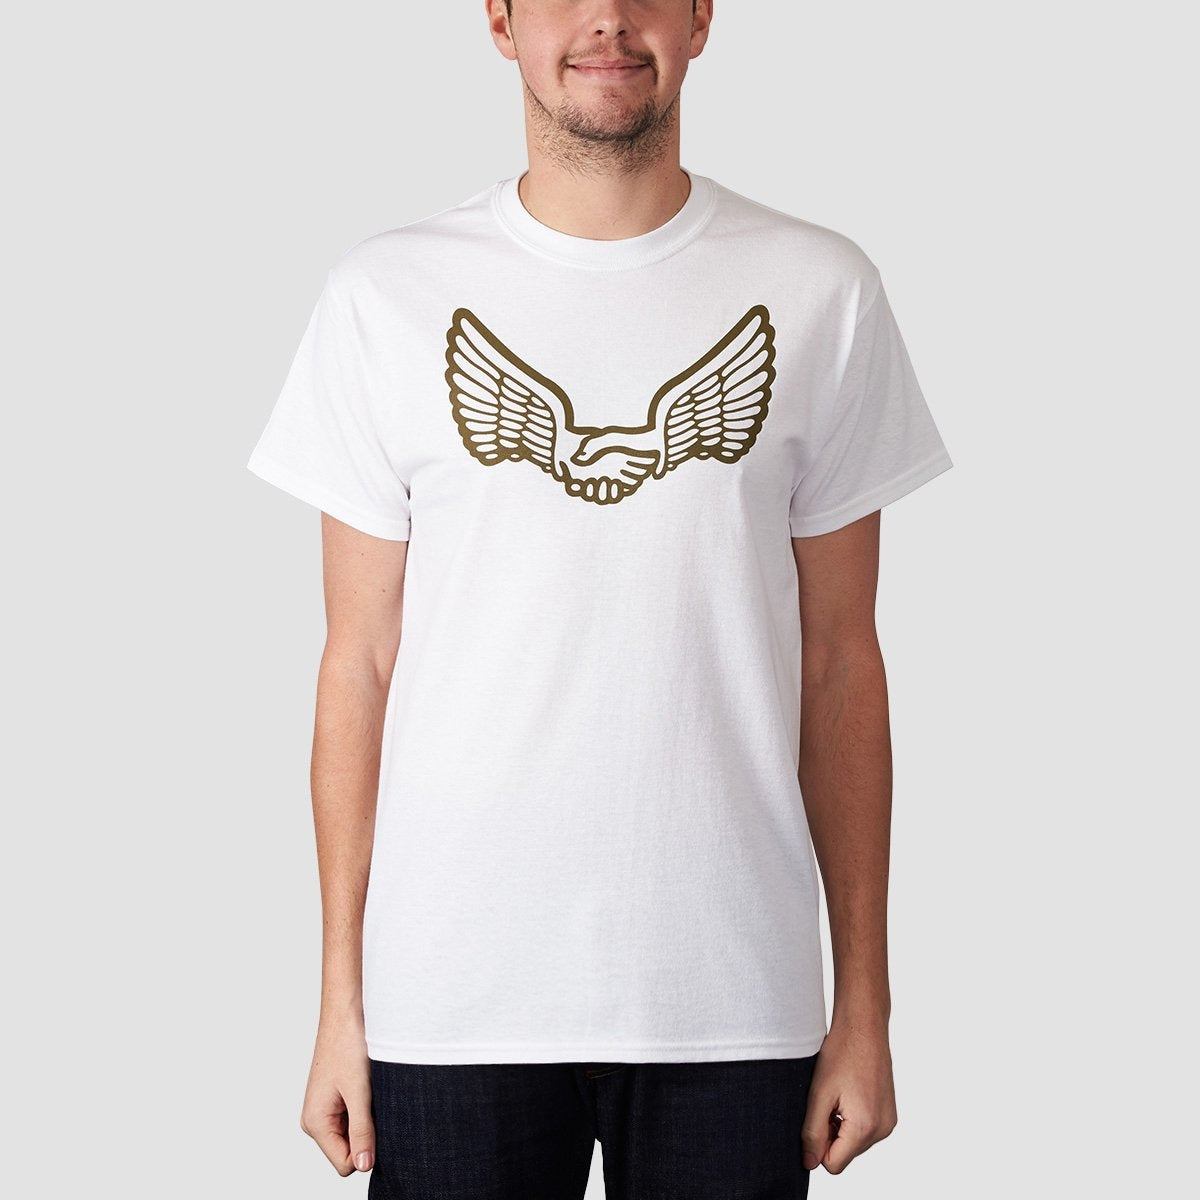 Unabomber Wings Tee White/Olive - Clothing